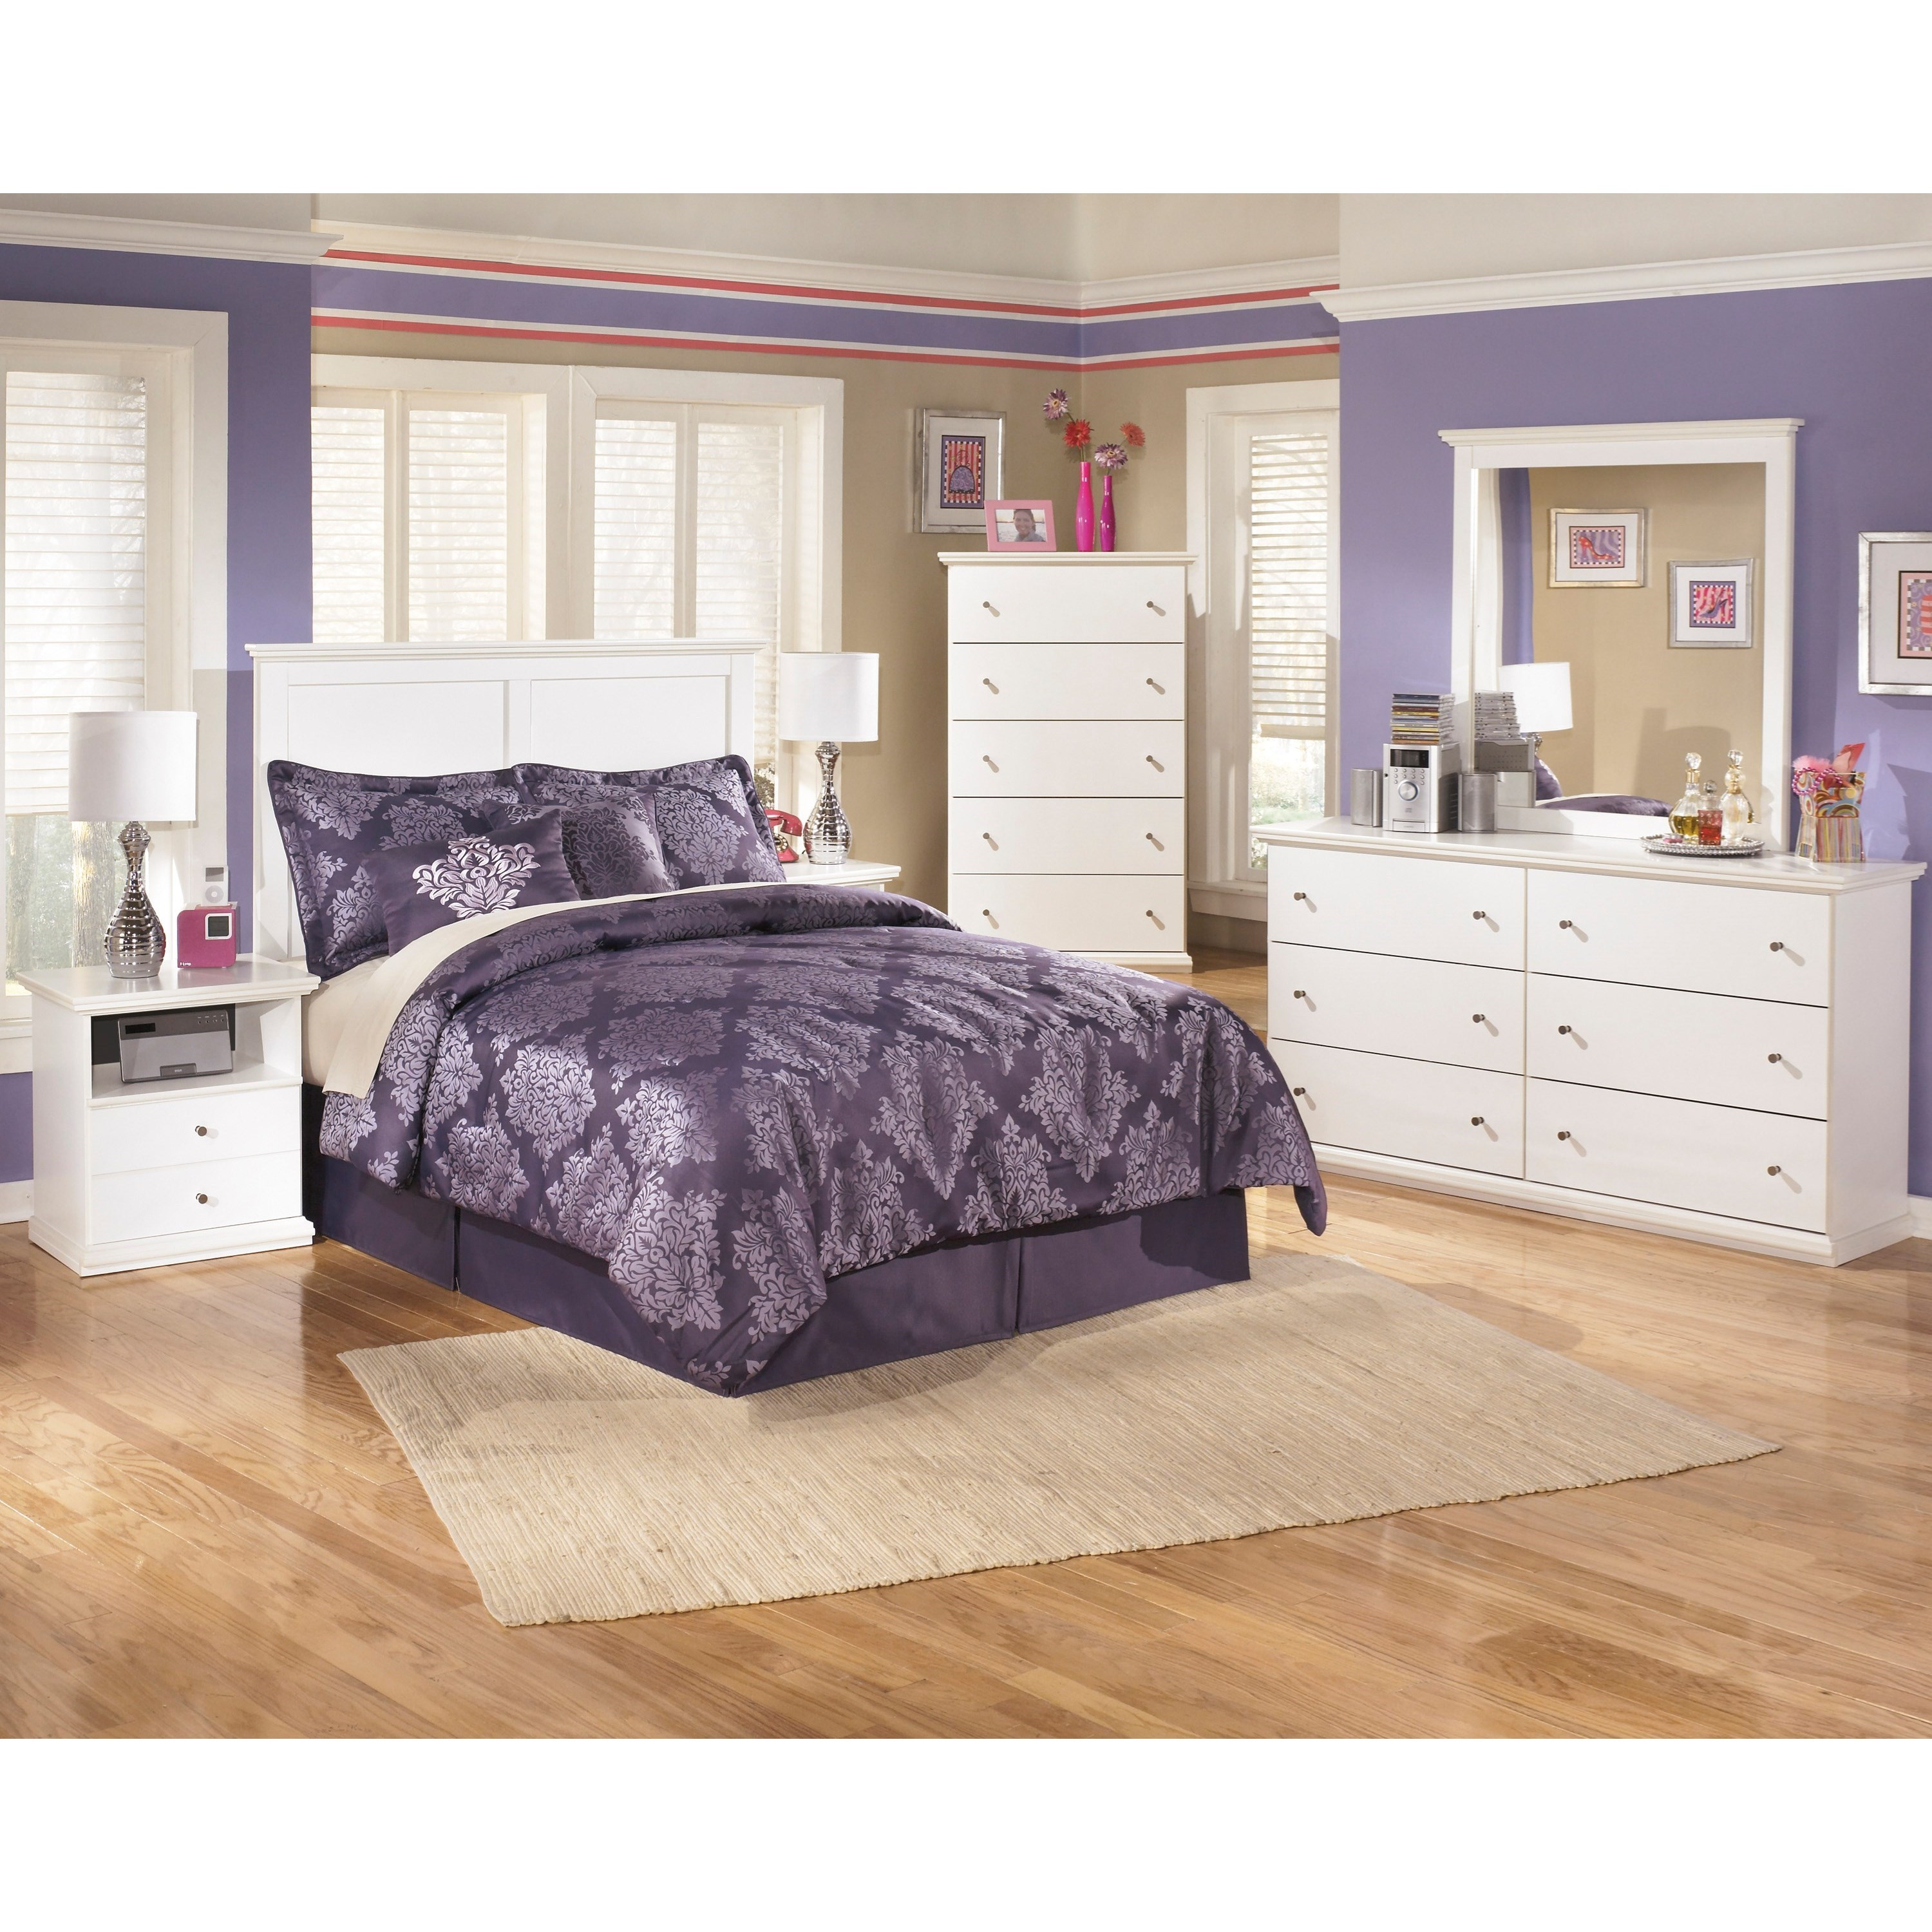 Bostwick Shoals Full Bedroom Group by Signature Design by Ashley at Sparks HomeStore